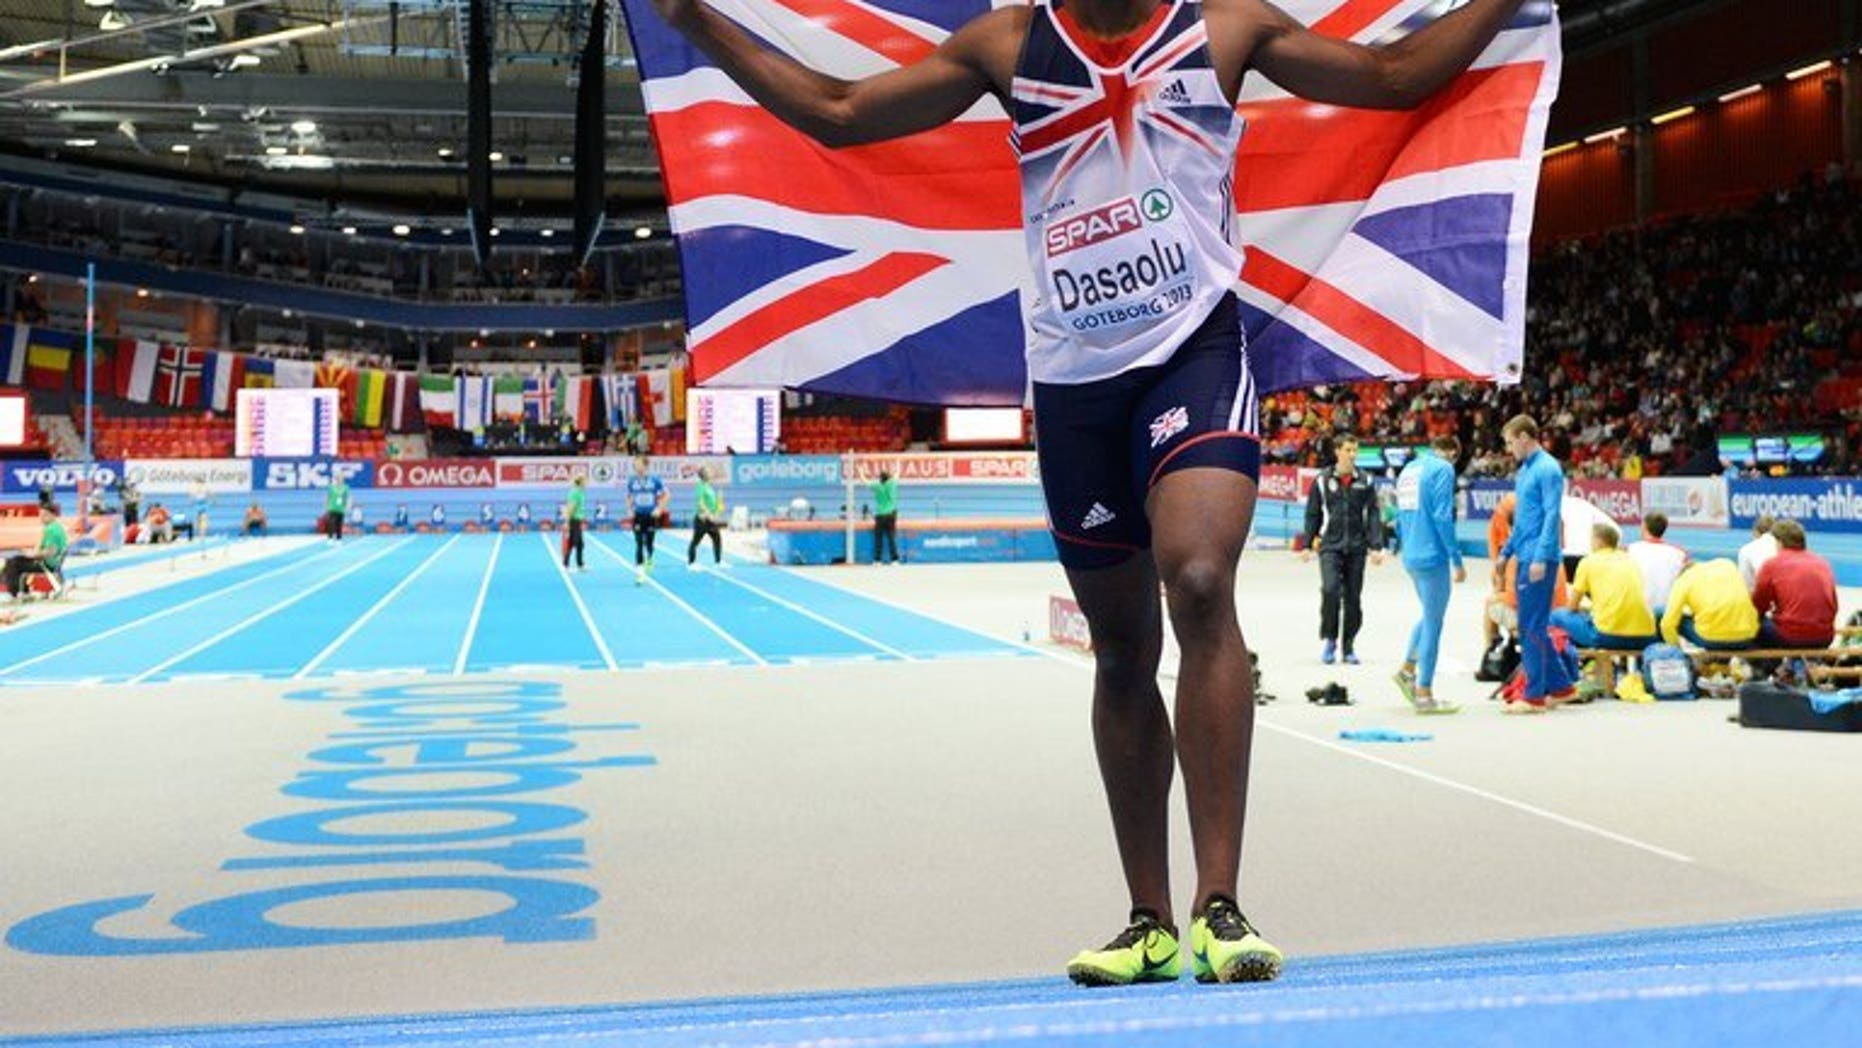 Great Britain's James Dasaolu is pictured at the European Indoor athletics Championships in Gothenburg, Sweden, on March 2, 2013. Dasaolu produced a blistering sprint of 9.91 seconds to become the second fastest Briton of all time in the 100 metres semi-finals at the British Championships